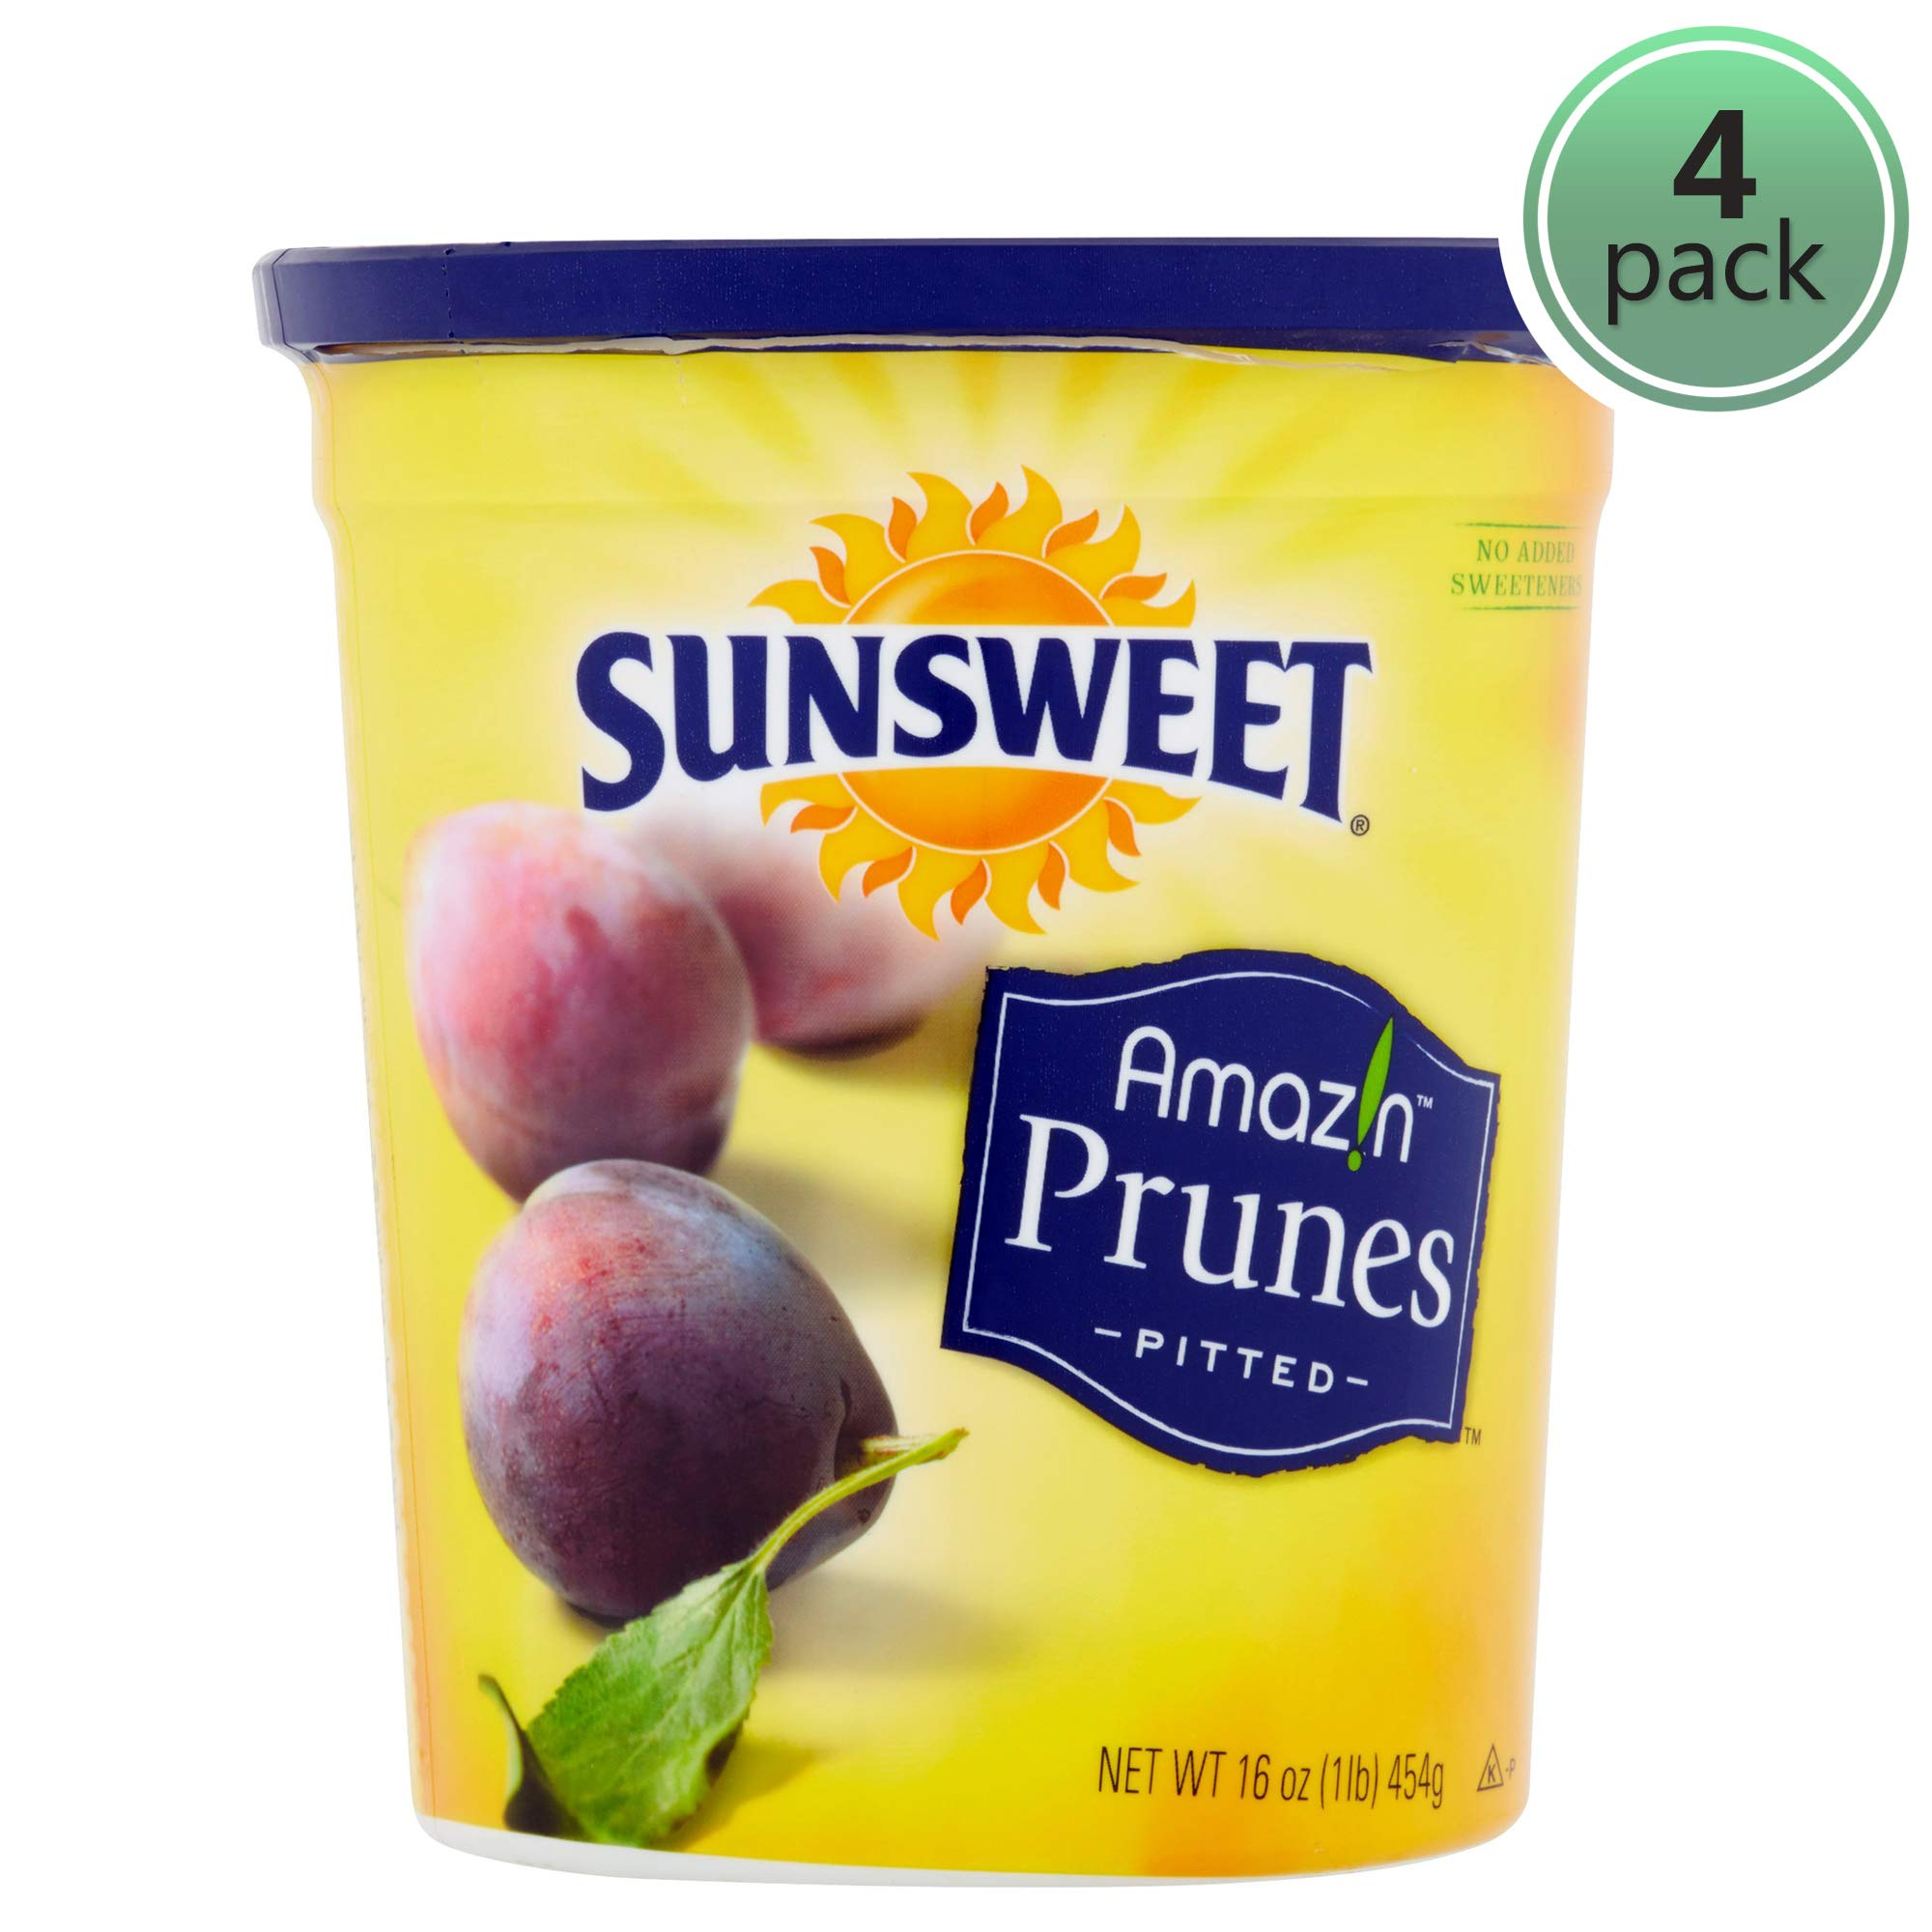 SUNSWEET Amazin Pitted Prunes, 16 oz - Pack of 4 by Sunsweet